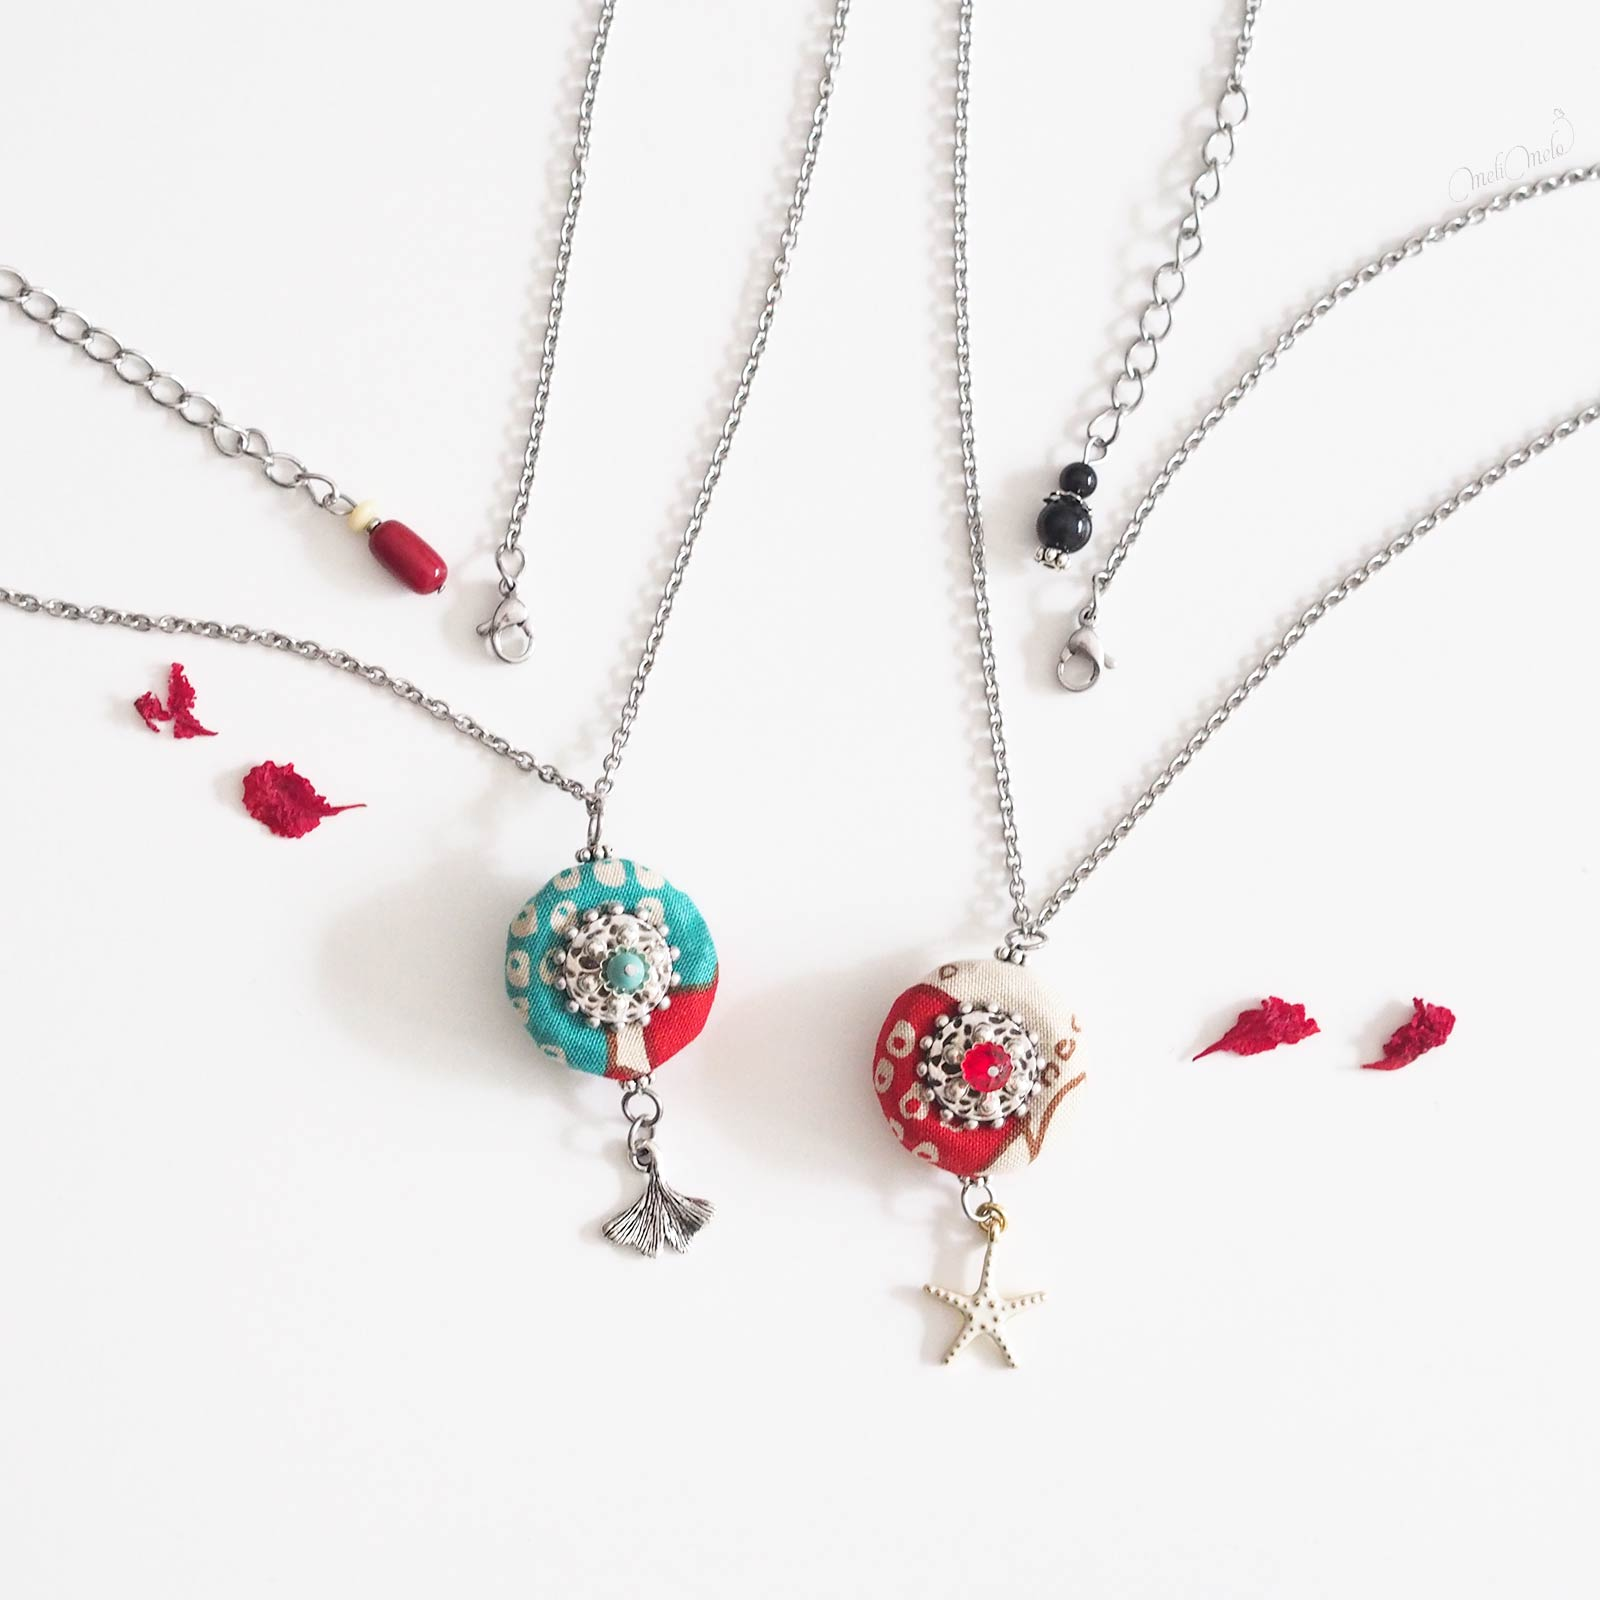 colliers zui feuille ginkgo etoile mer turquoise rouge Swarovski laboutiquedemelimelo